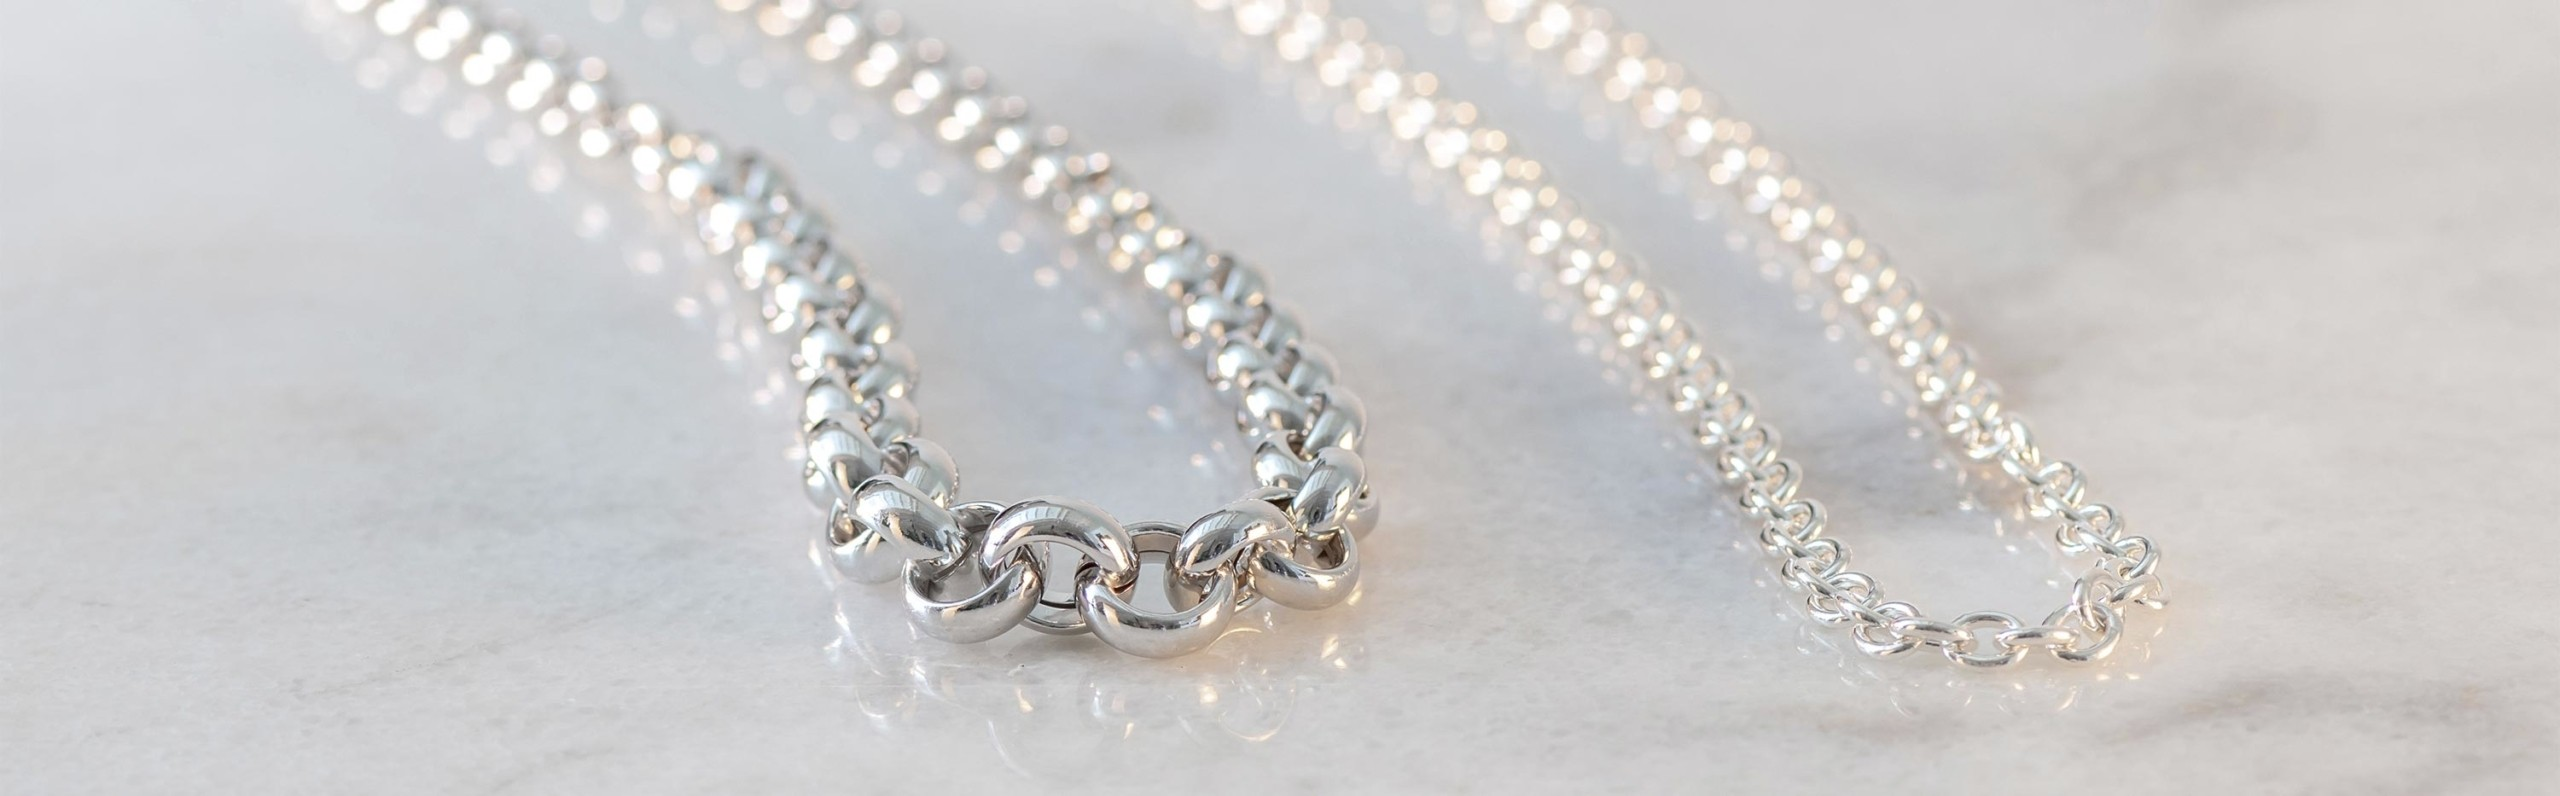 Chains - Dawes Jewellery Home Page